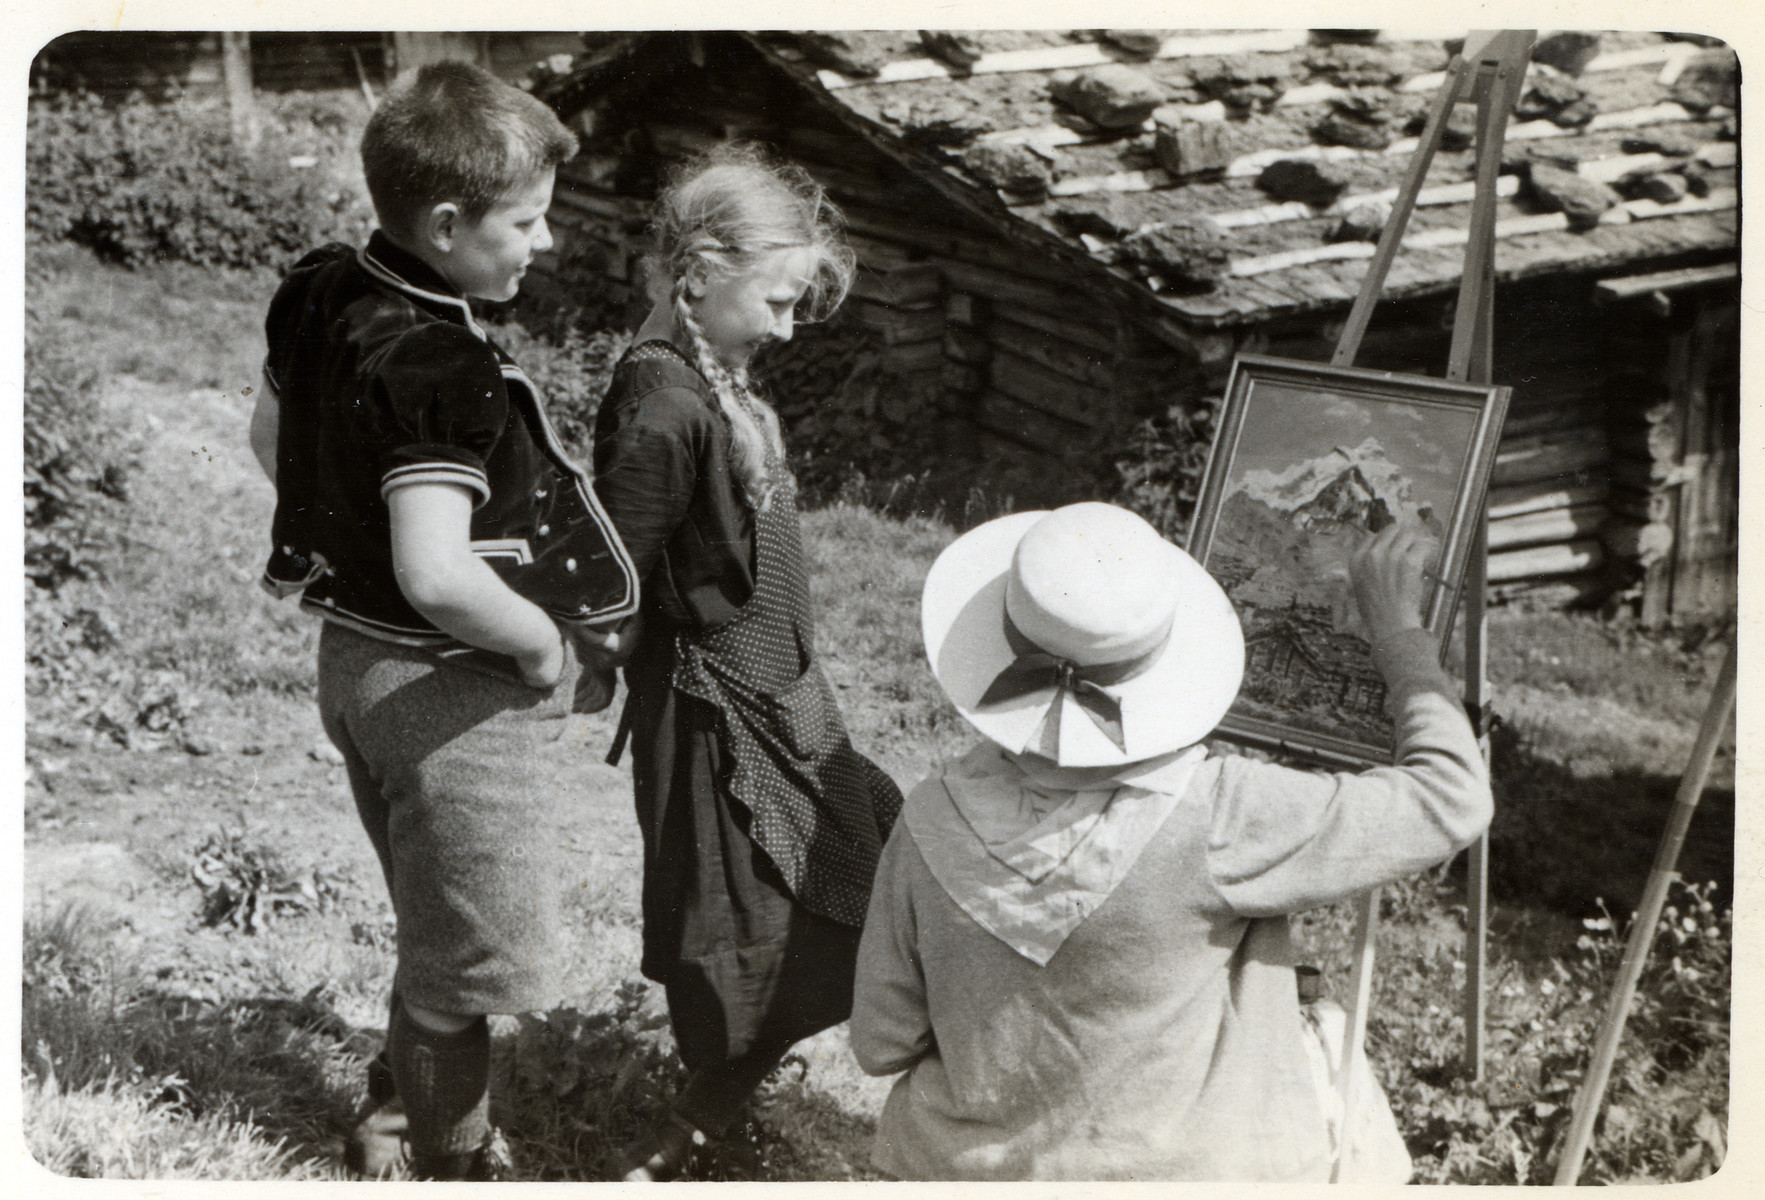 A woman paints a landscape while two young children look on.